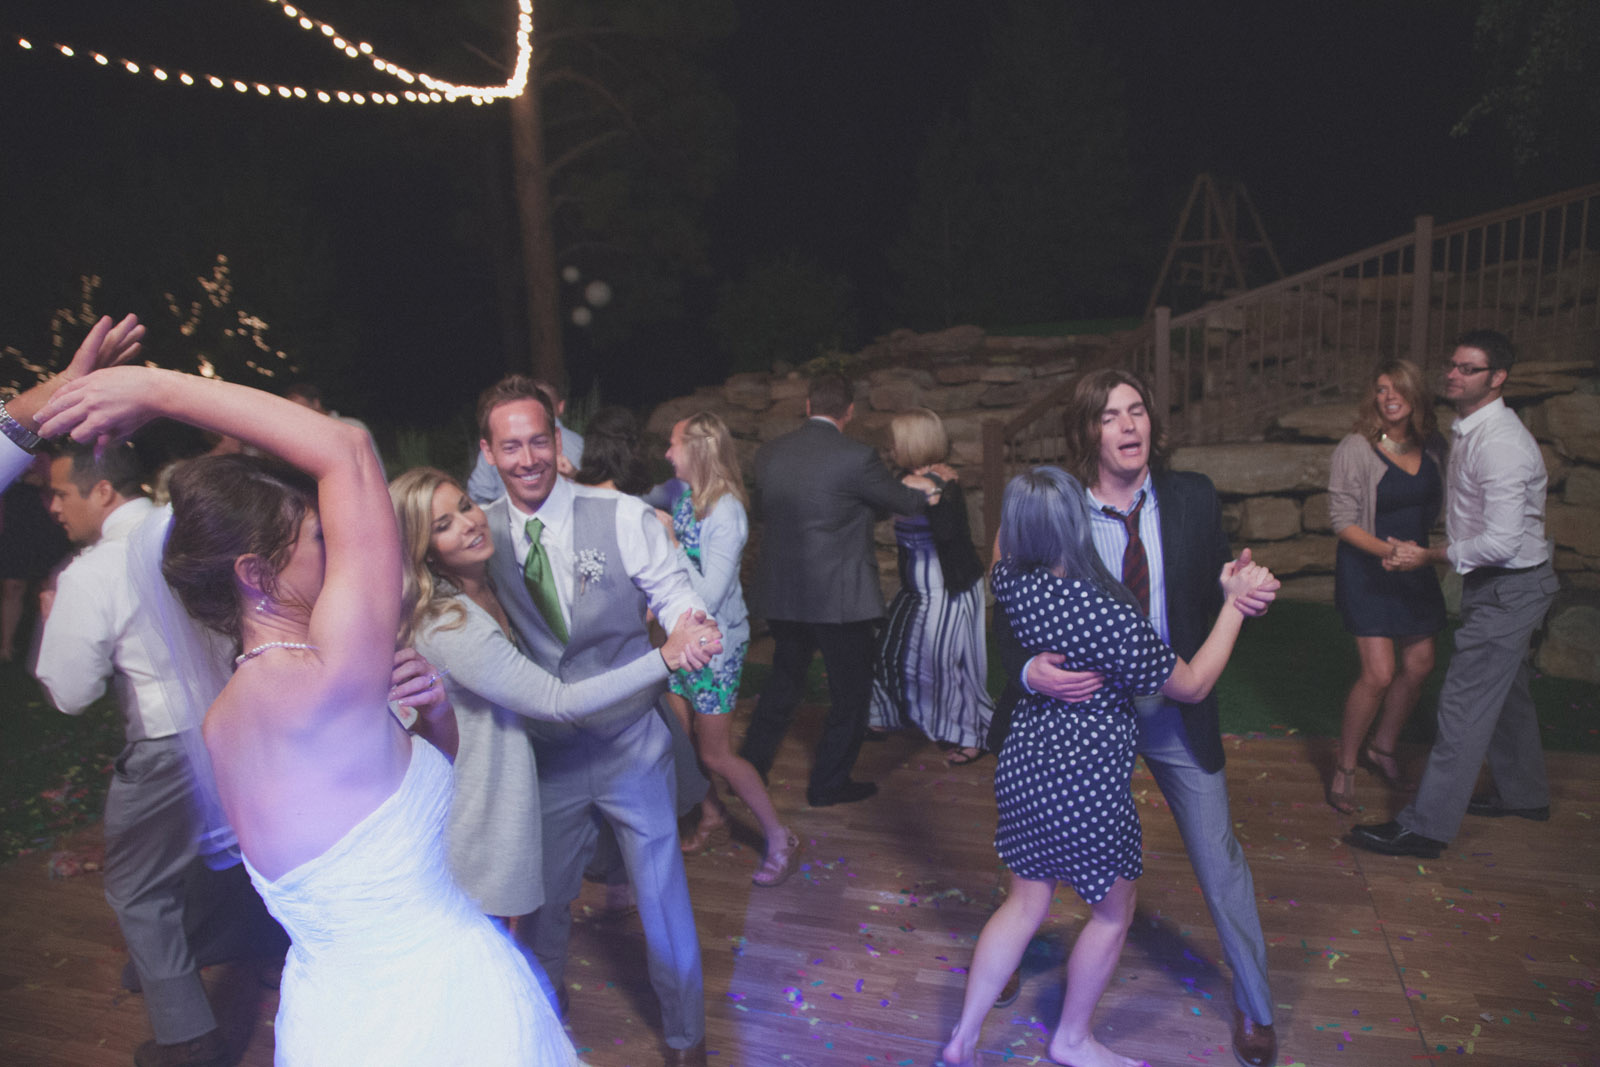 236-reception-ideas-reception-farmington-nm-co-new-mexico-colorado-mancos-ideas-string-lights-cabin-outside-natural-wedding-night-strobe-flash-dance-party